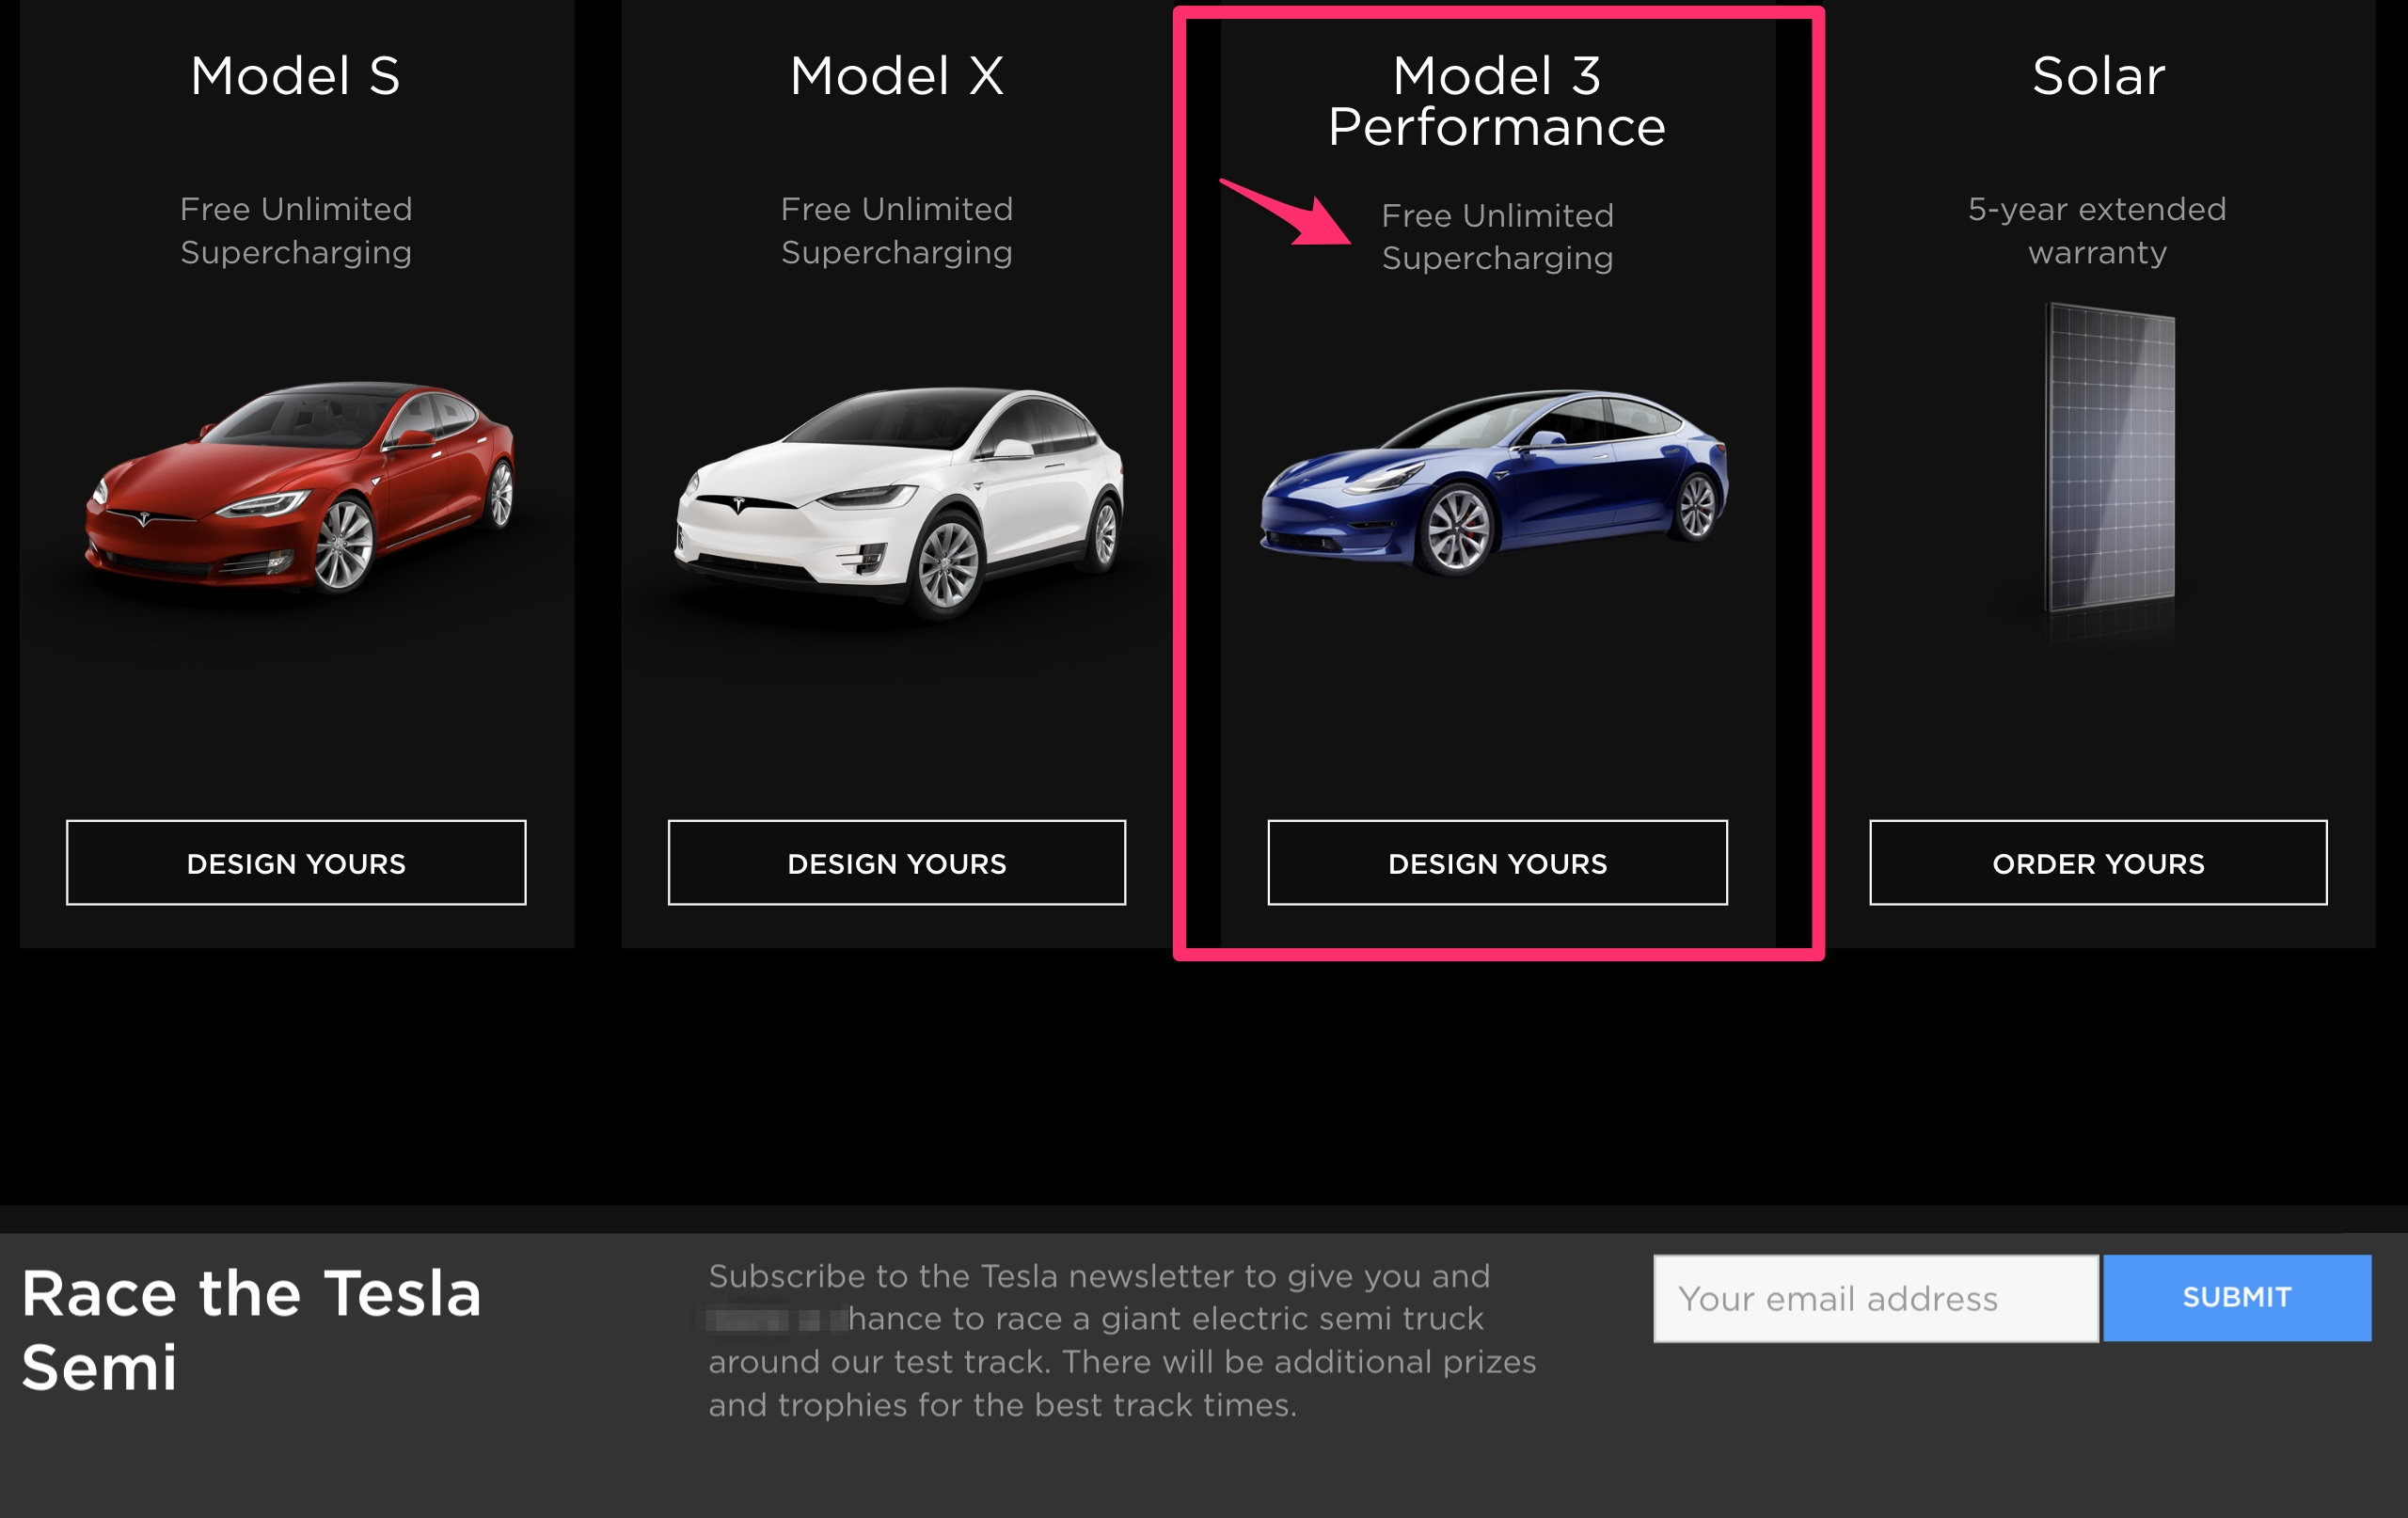 Tesla offers Model 3 Performance buyers free unlimited ...